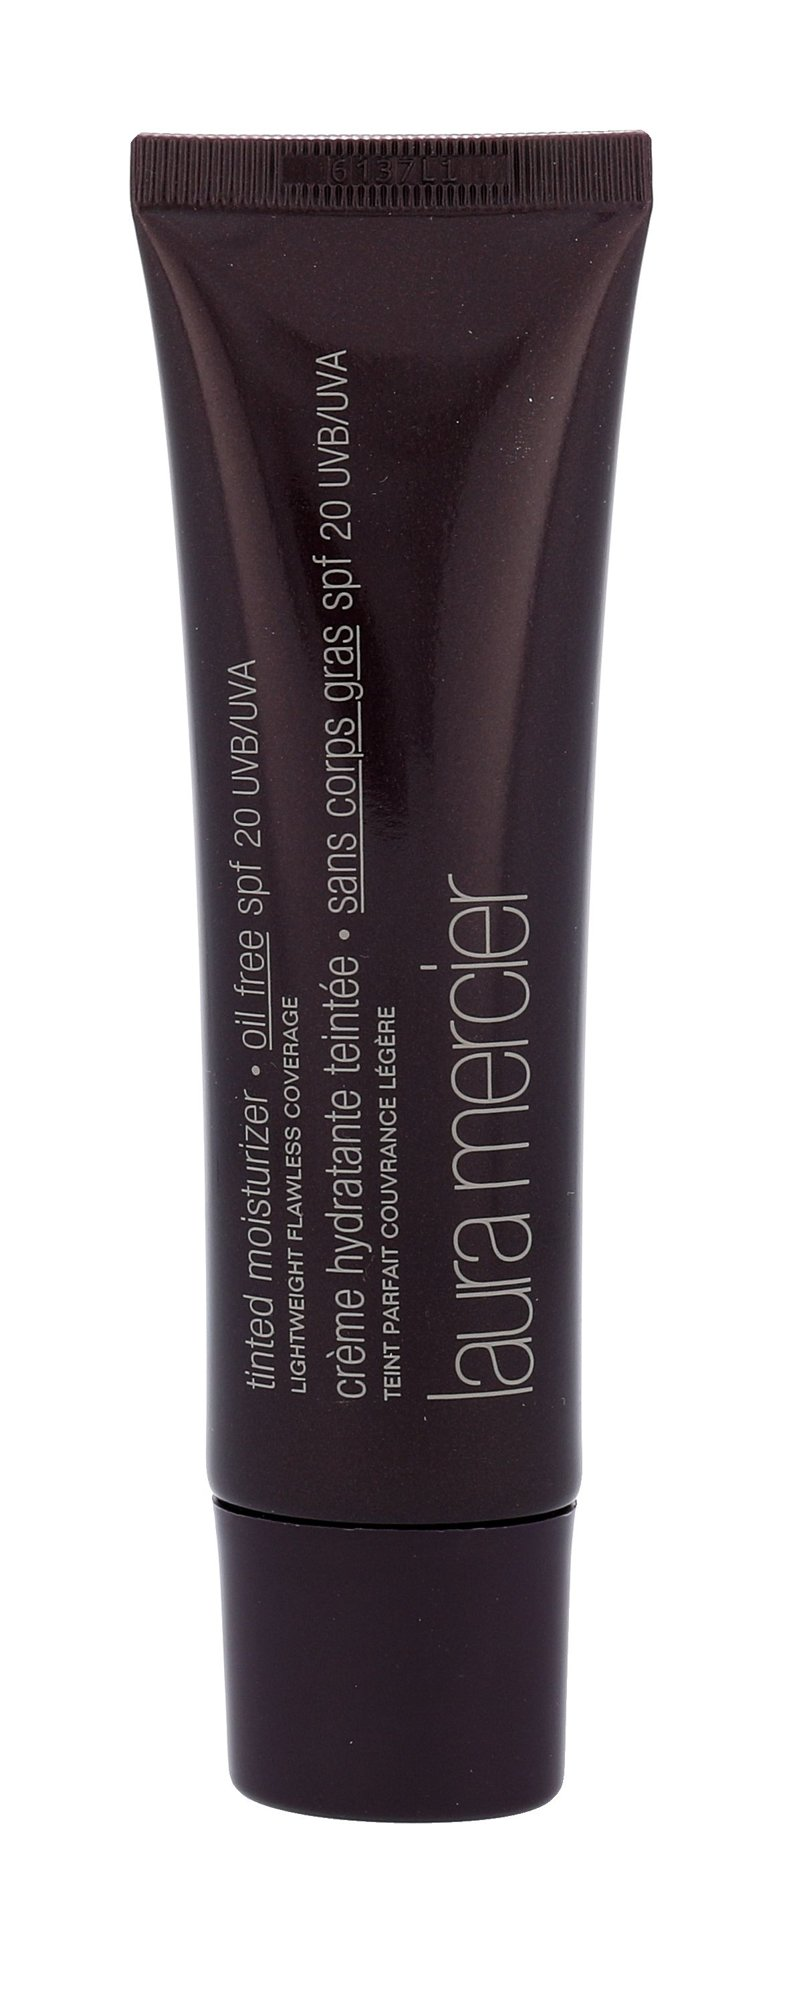 Laura Mercier Tinted Moisturizer Cosmetic 50ml Nude